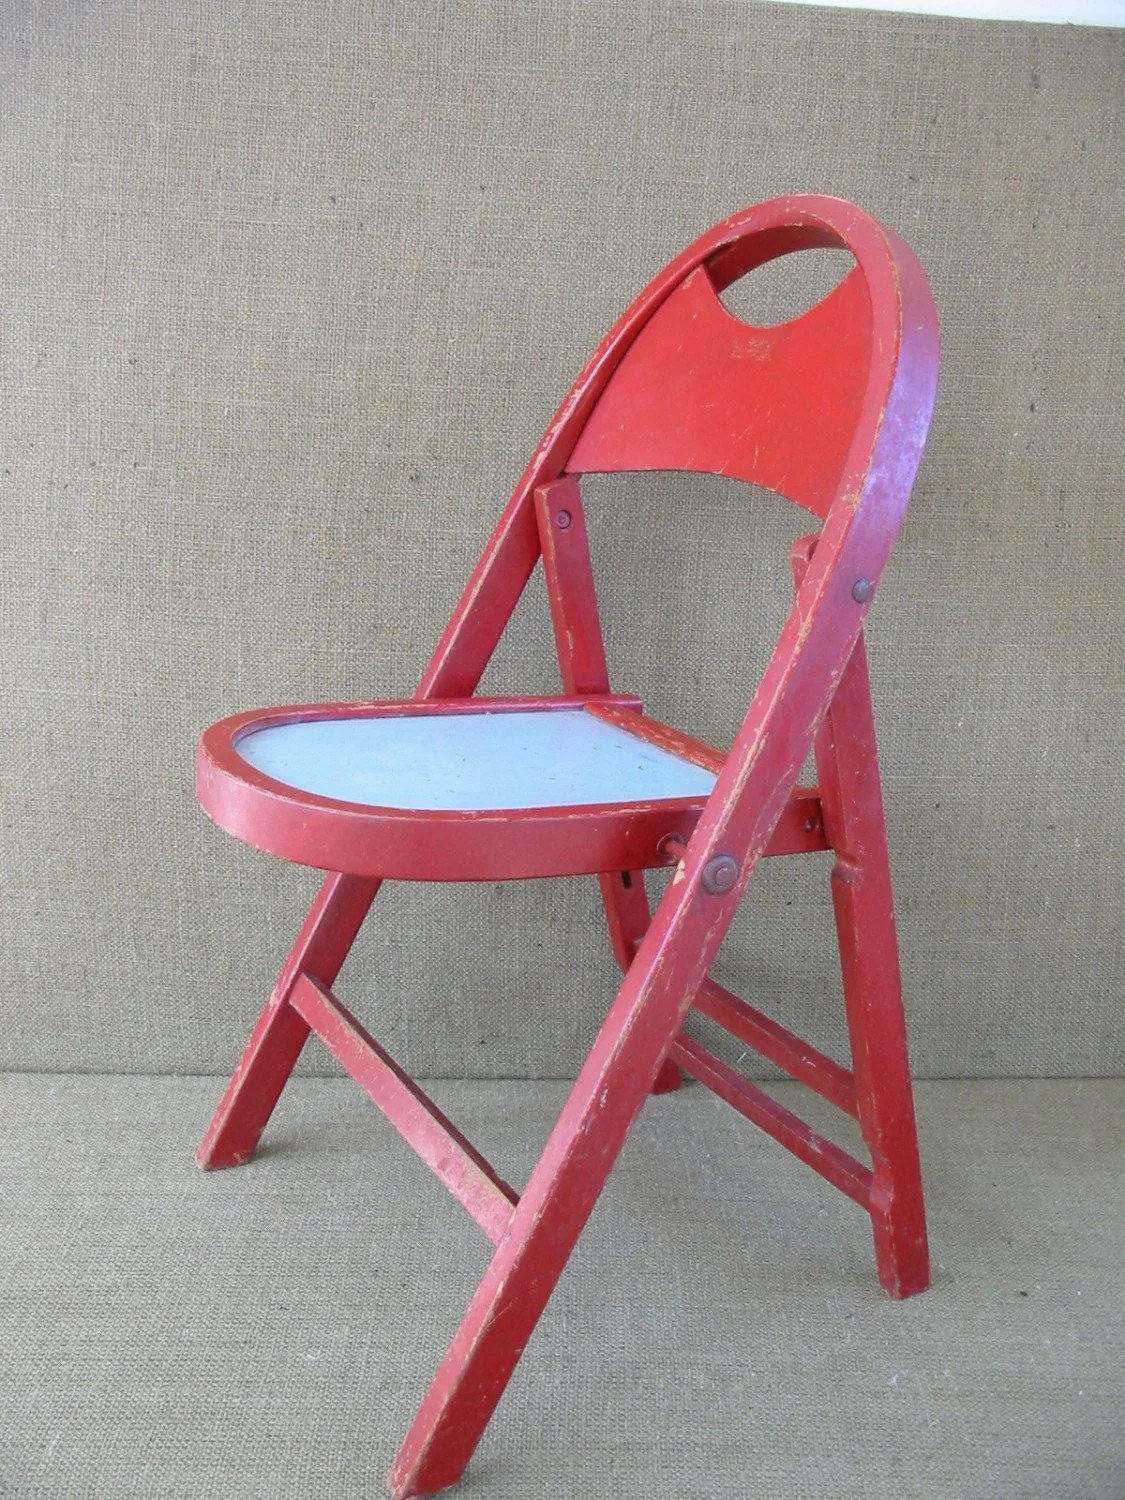 Kids Folding Chair Child 39s Folding Chair Children 39s Chair Red Vintage